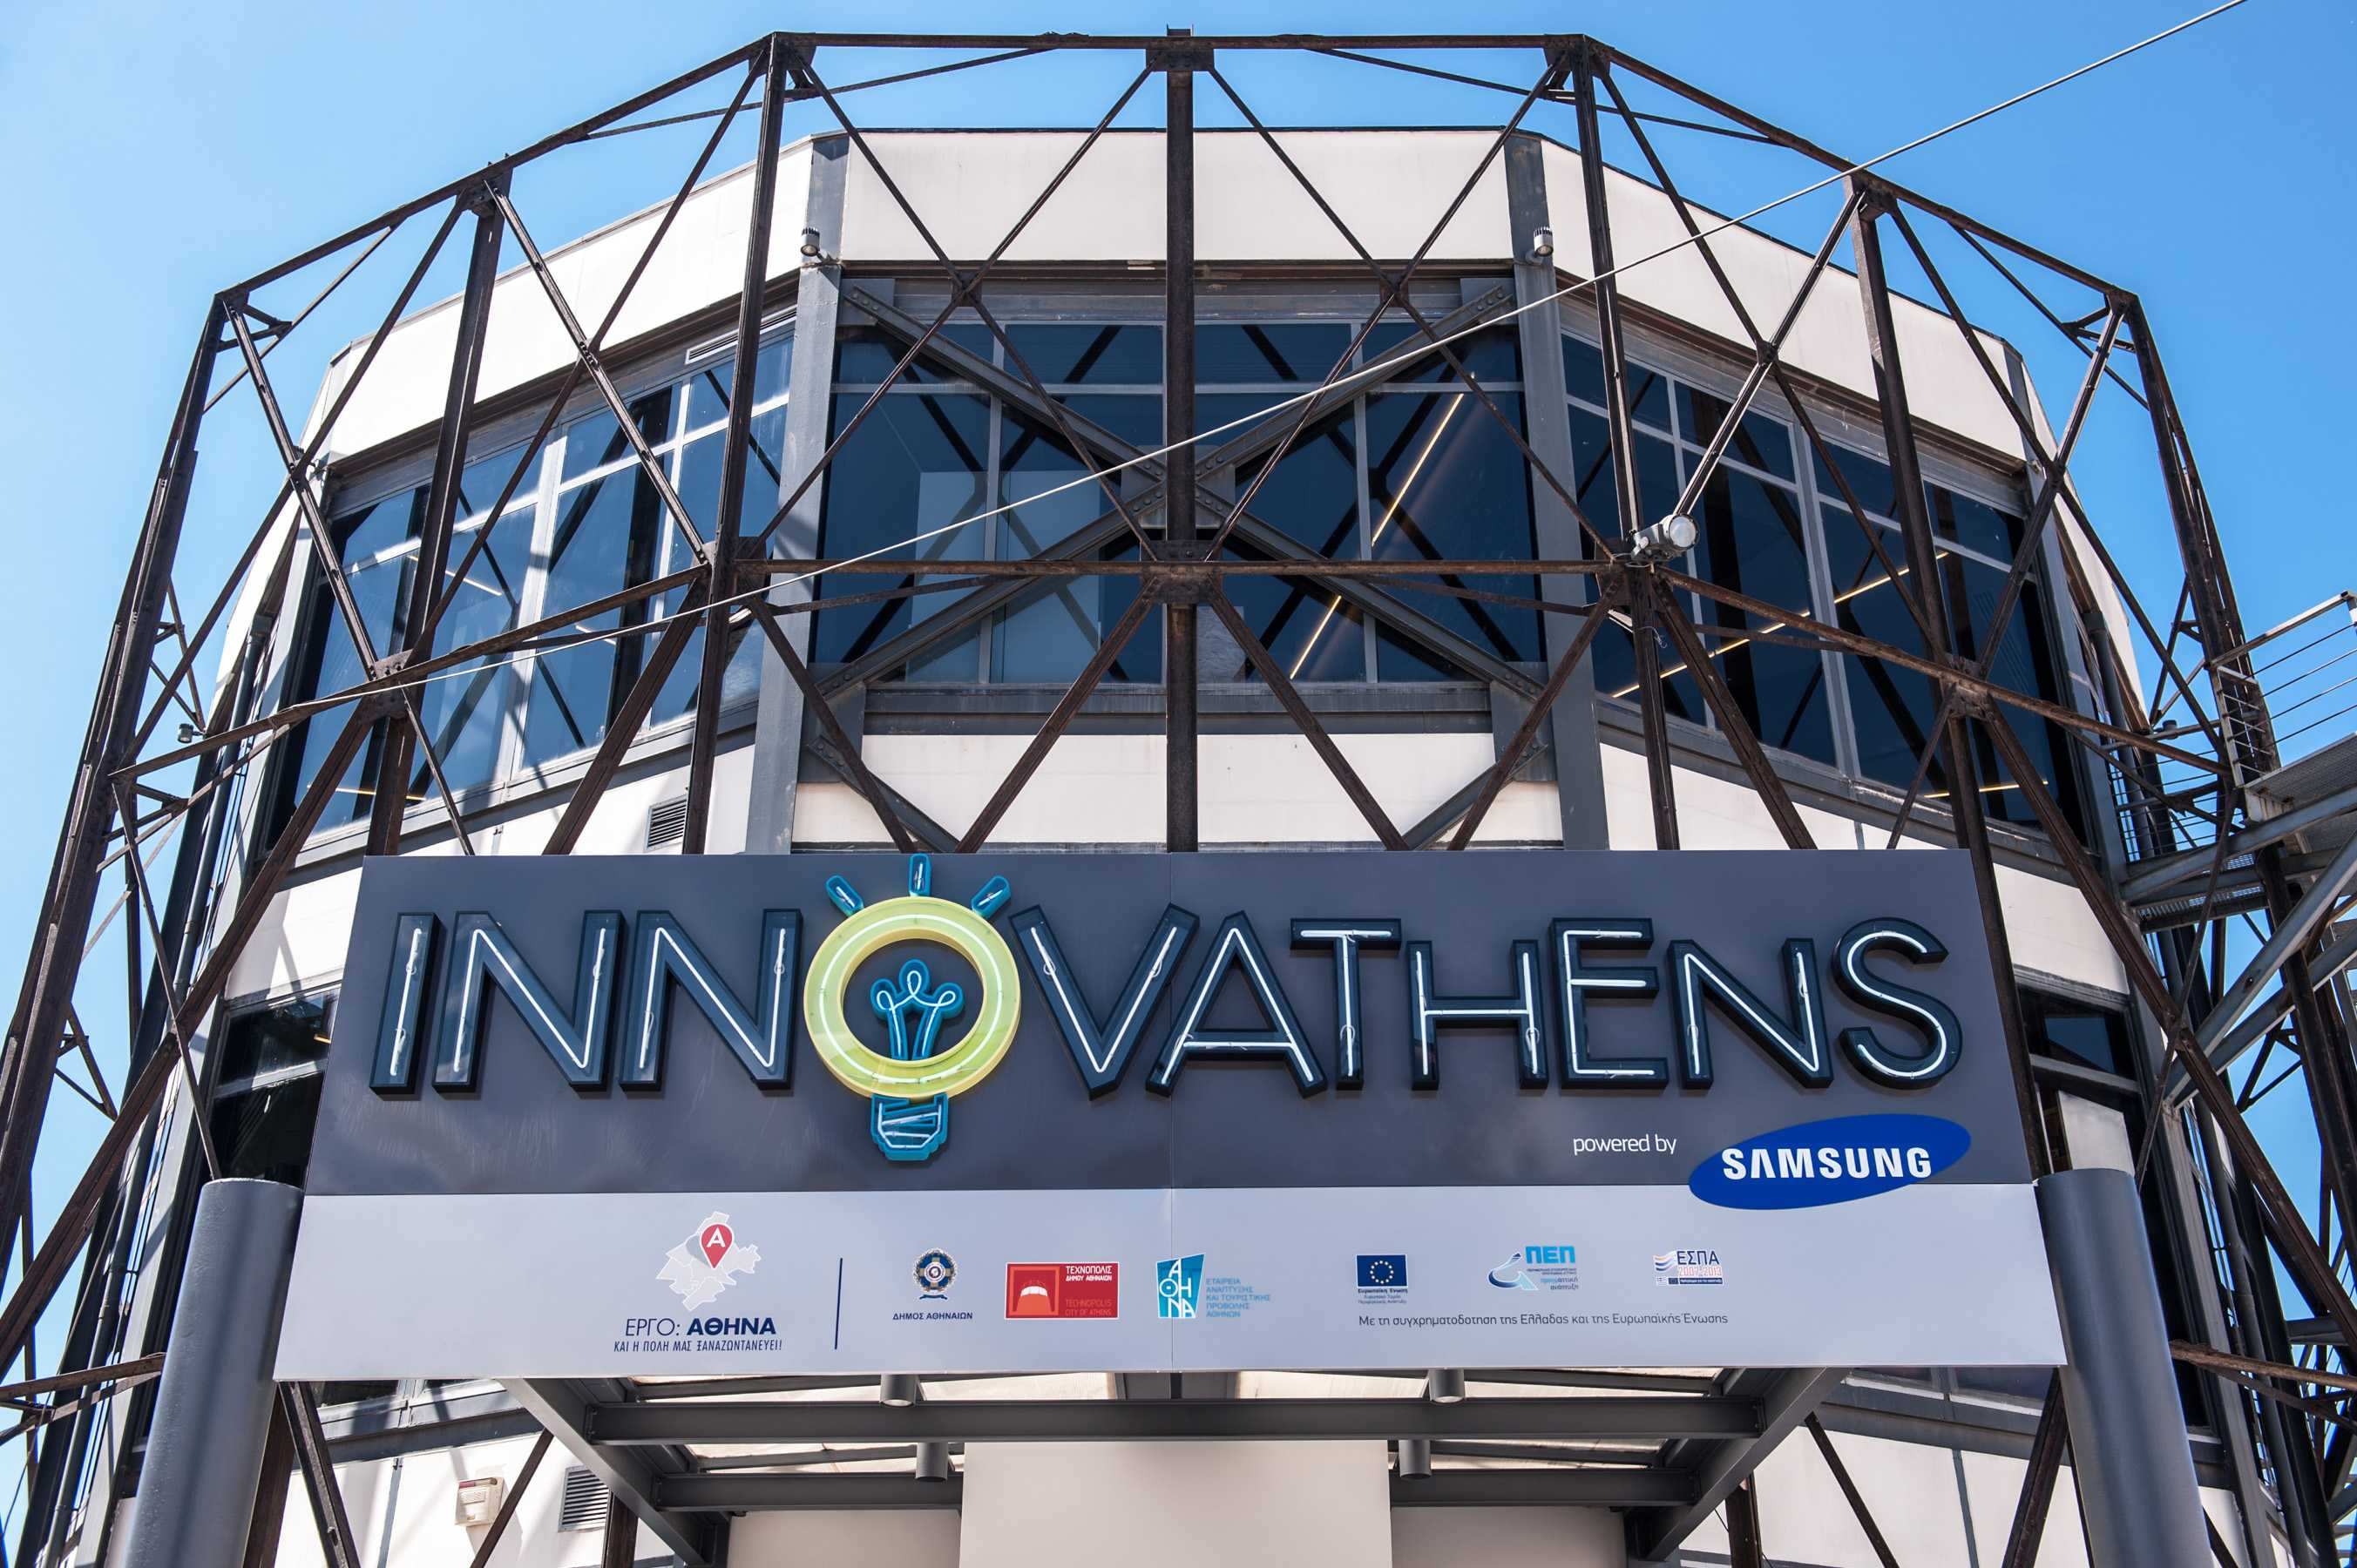 InnovAthens powered by Samsung